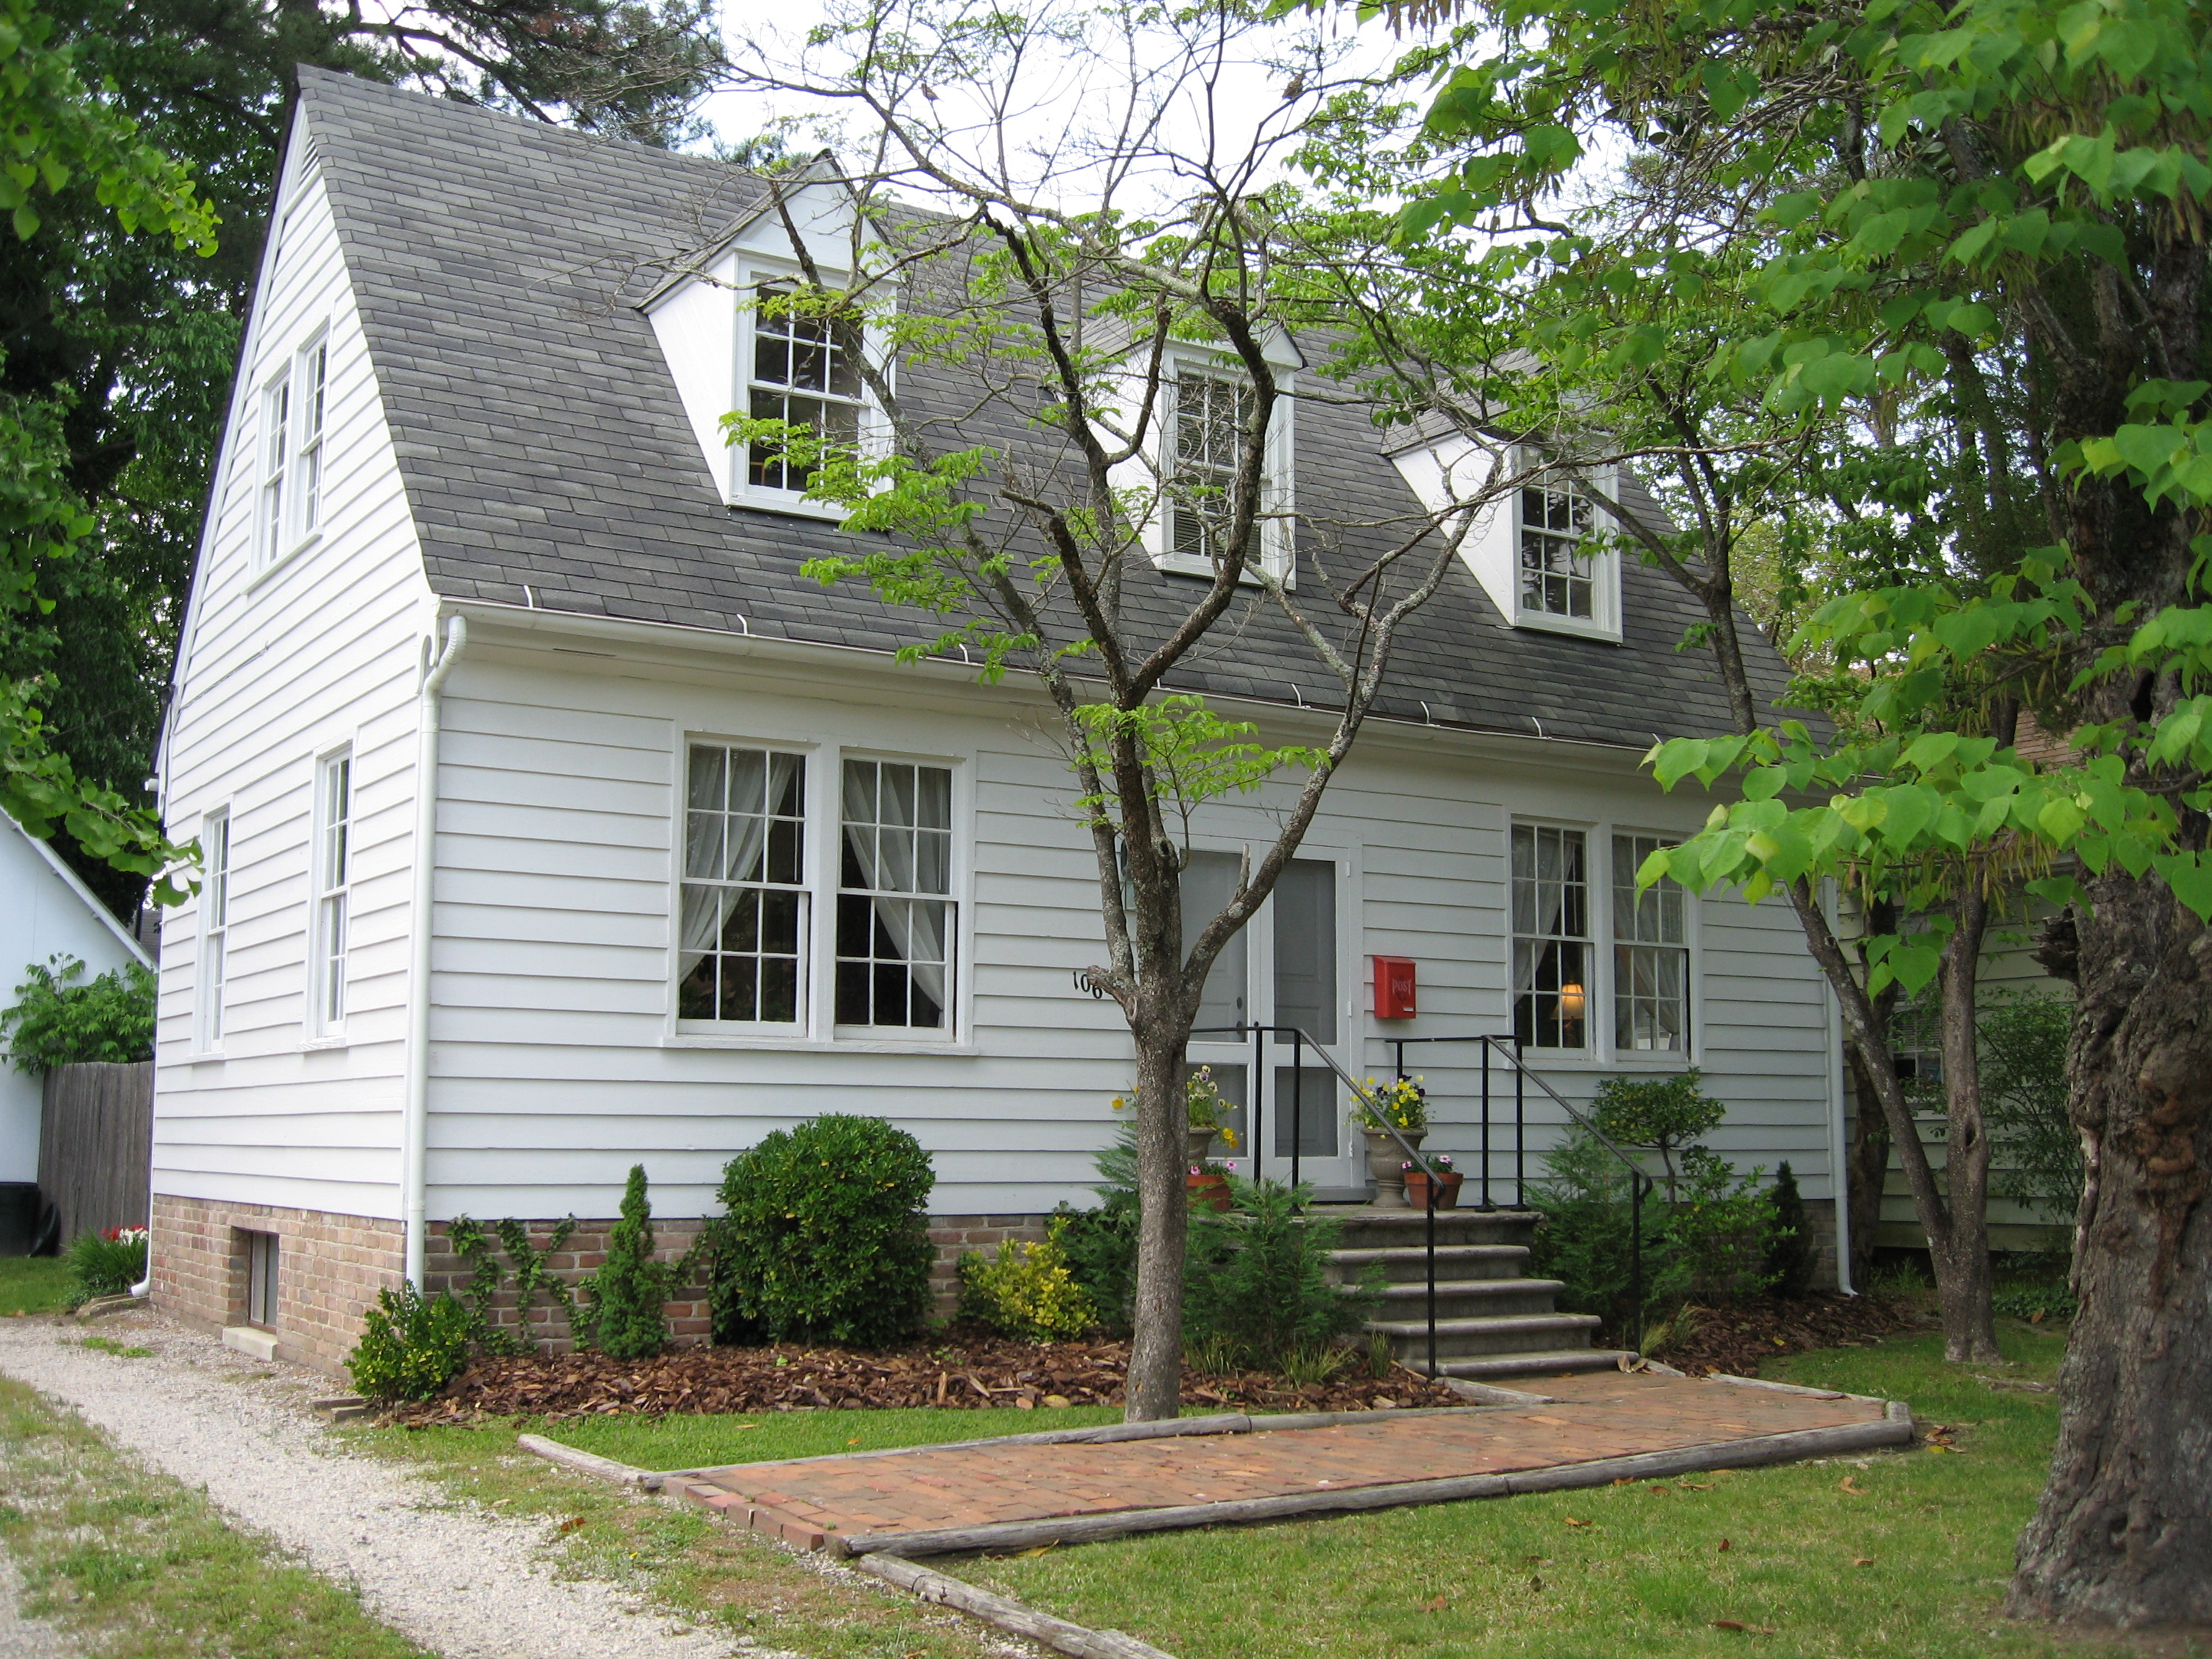 14 Delightful Small Colonial Homes Building Plans Online